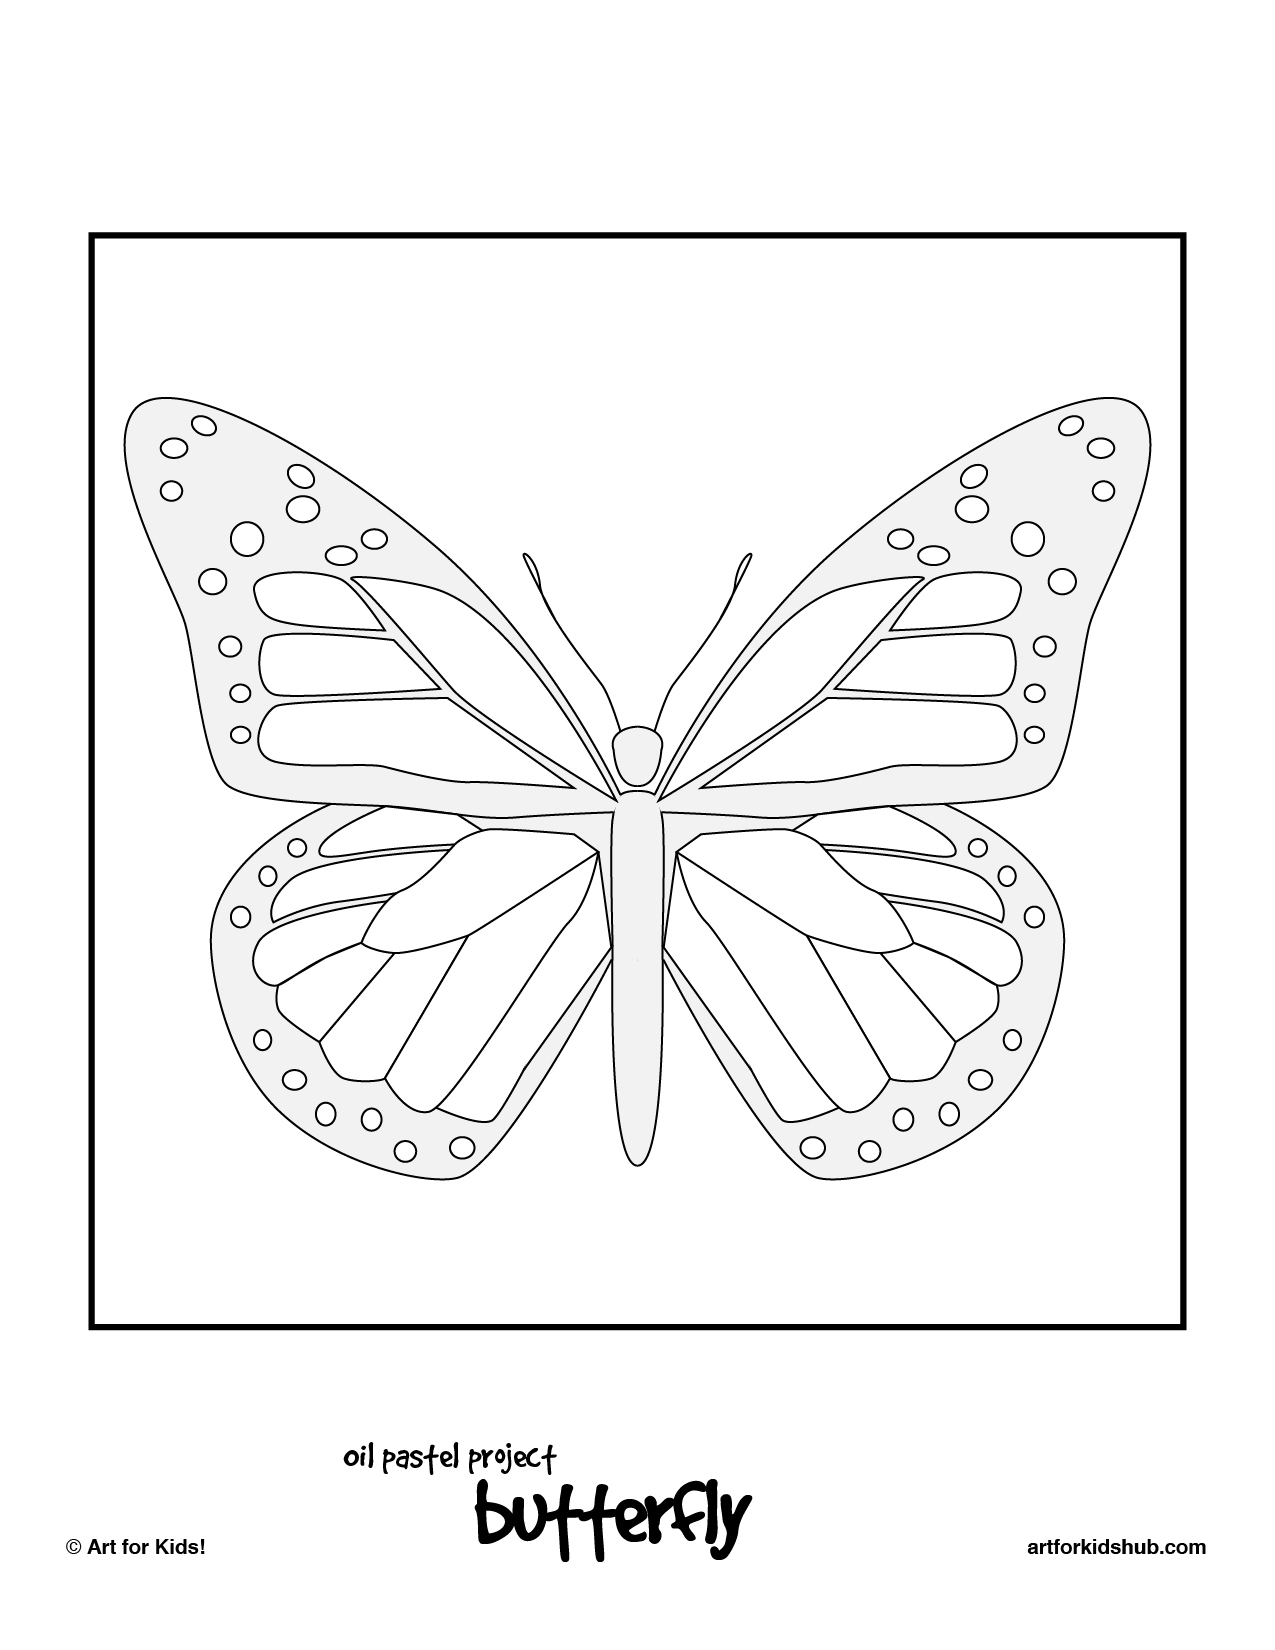 Printables Monarch Butterfly Worksheets oil pastel art project monarch butterfly for kids hub download and print the free image